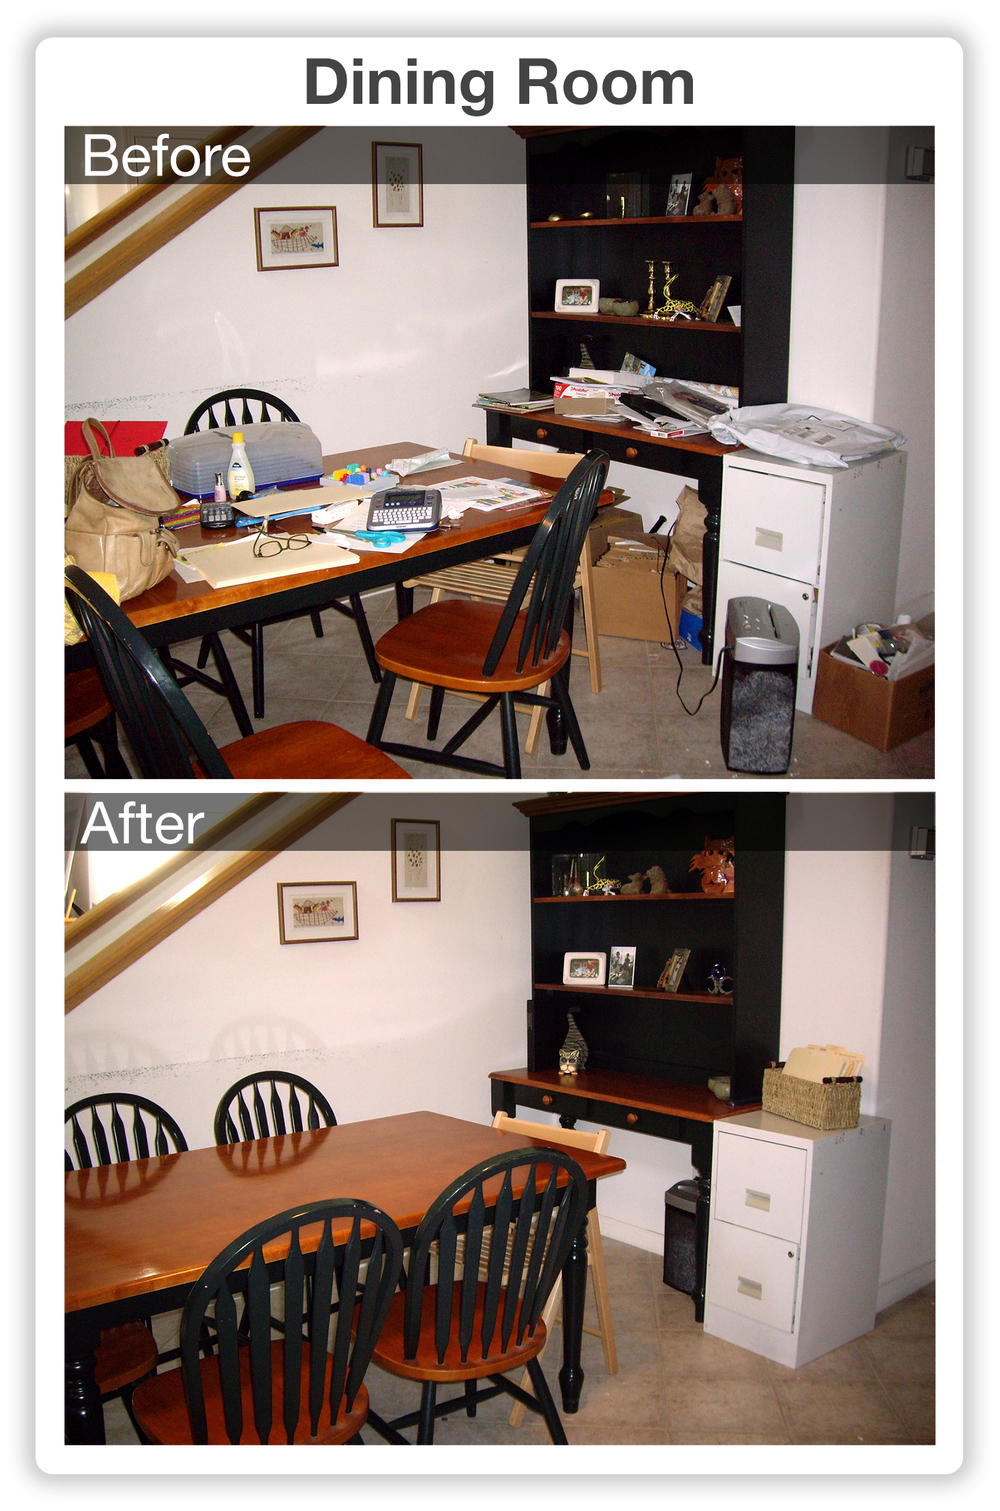 organized_by_choice_dining_room.jpg